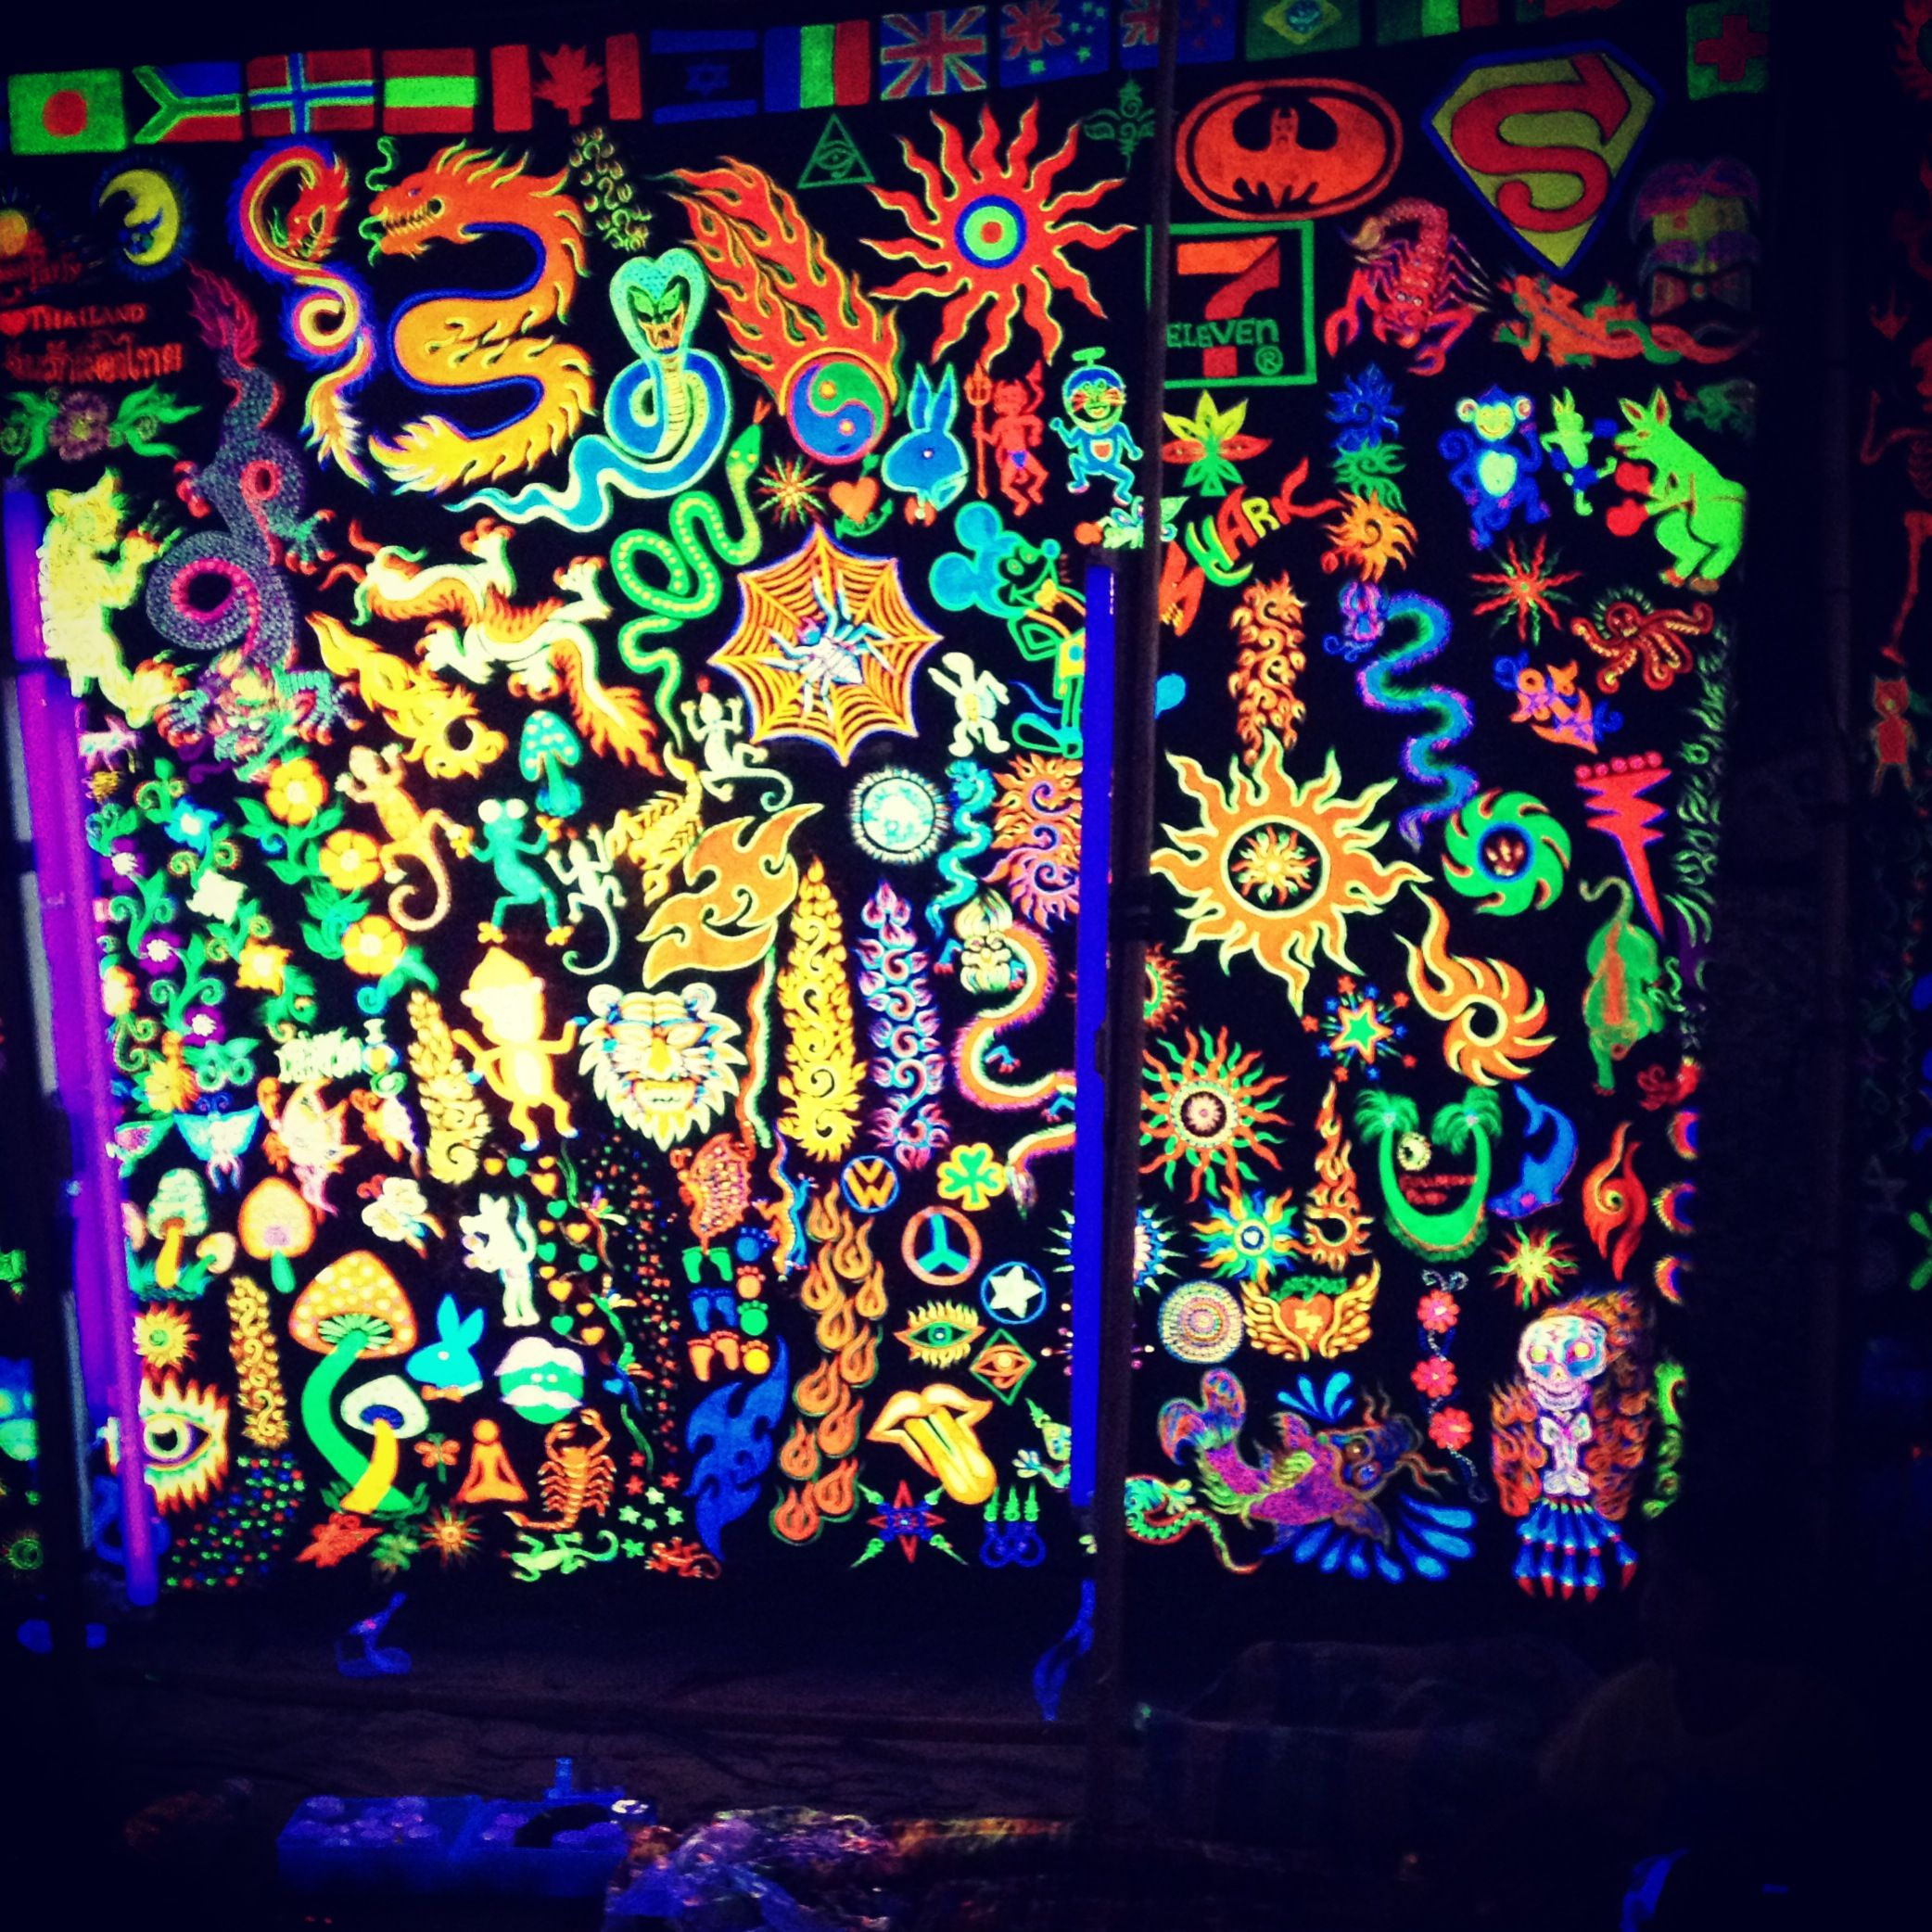 Thailand Full Moon Party Uv Paint Arts And Crafts ️